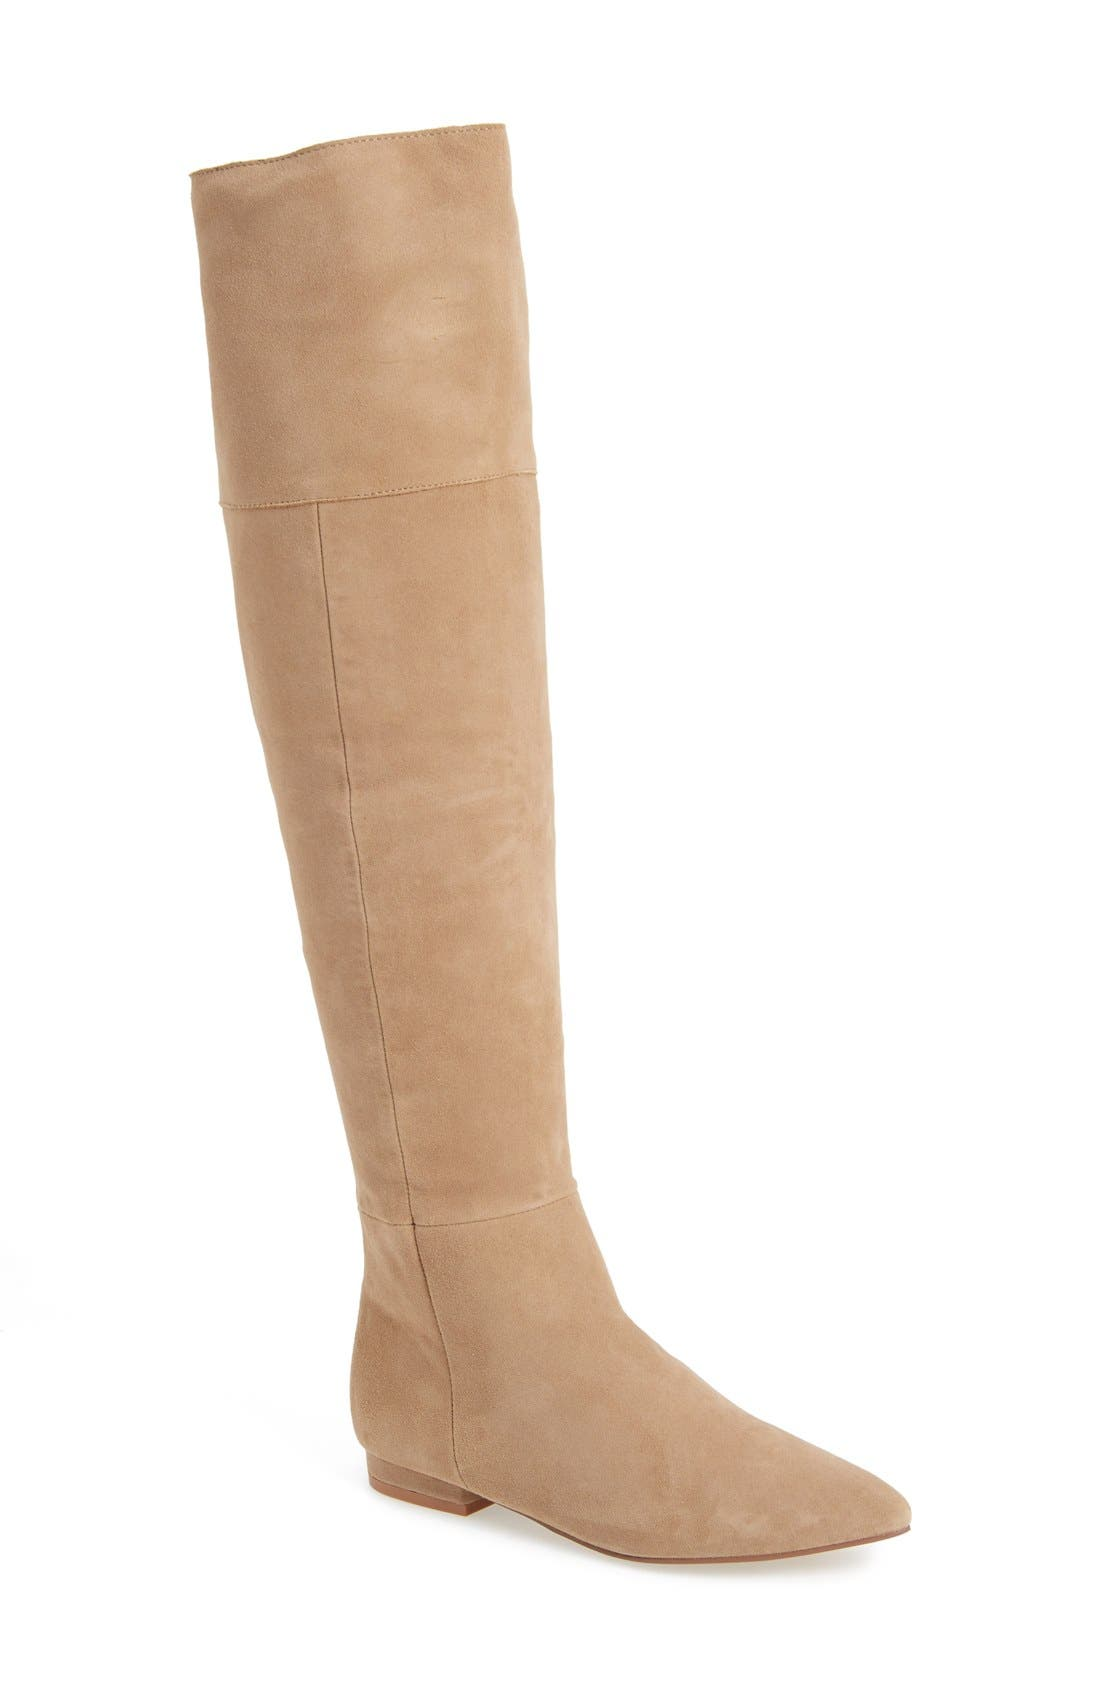 Alternate Image 1 Selected - Kristin Cavallari 'York' Over the Knee Boot (Women)